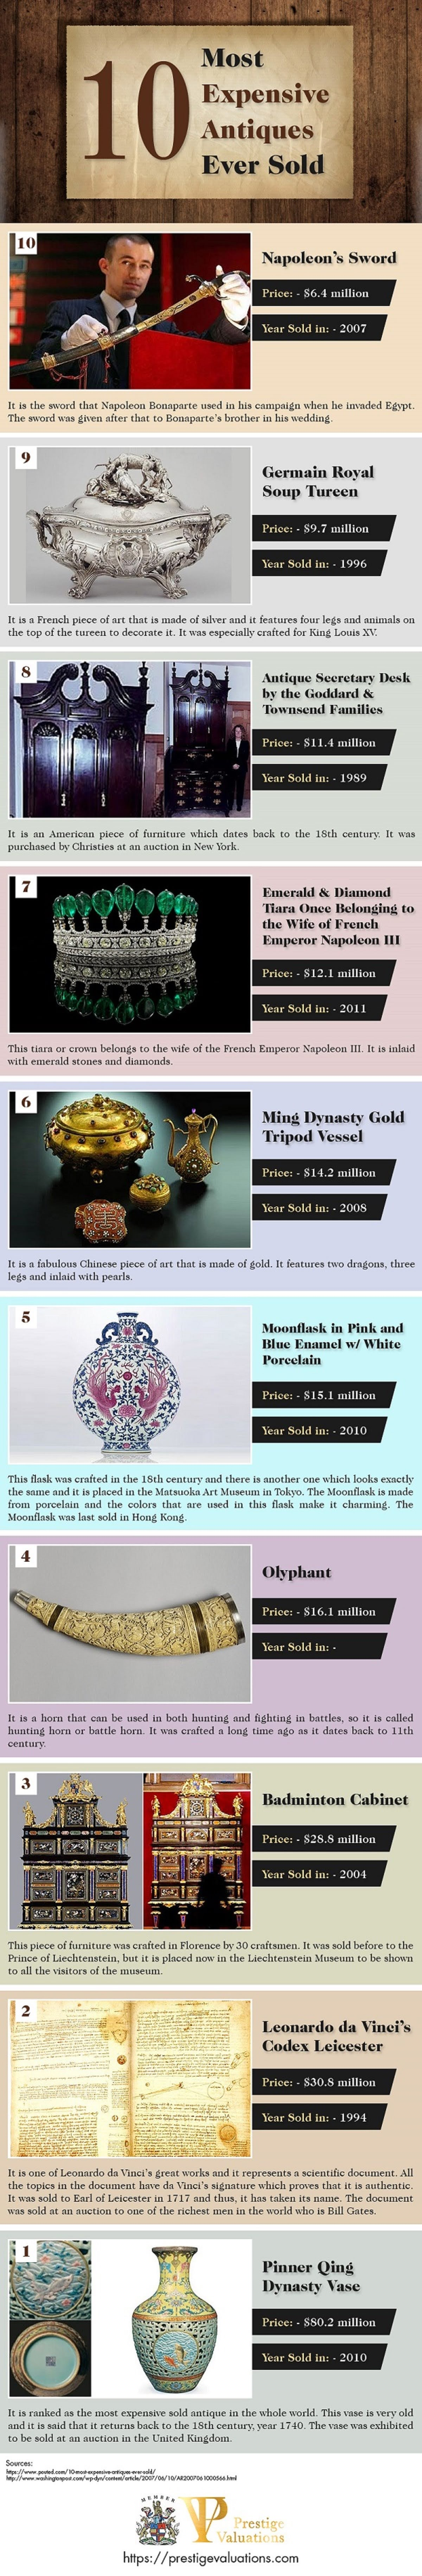 10-most-expensive-antiques-ever-sold-infographic